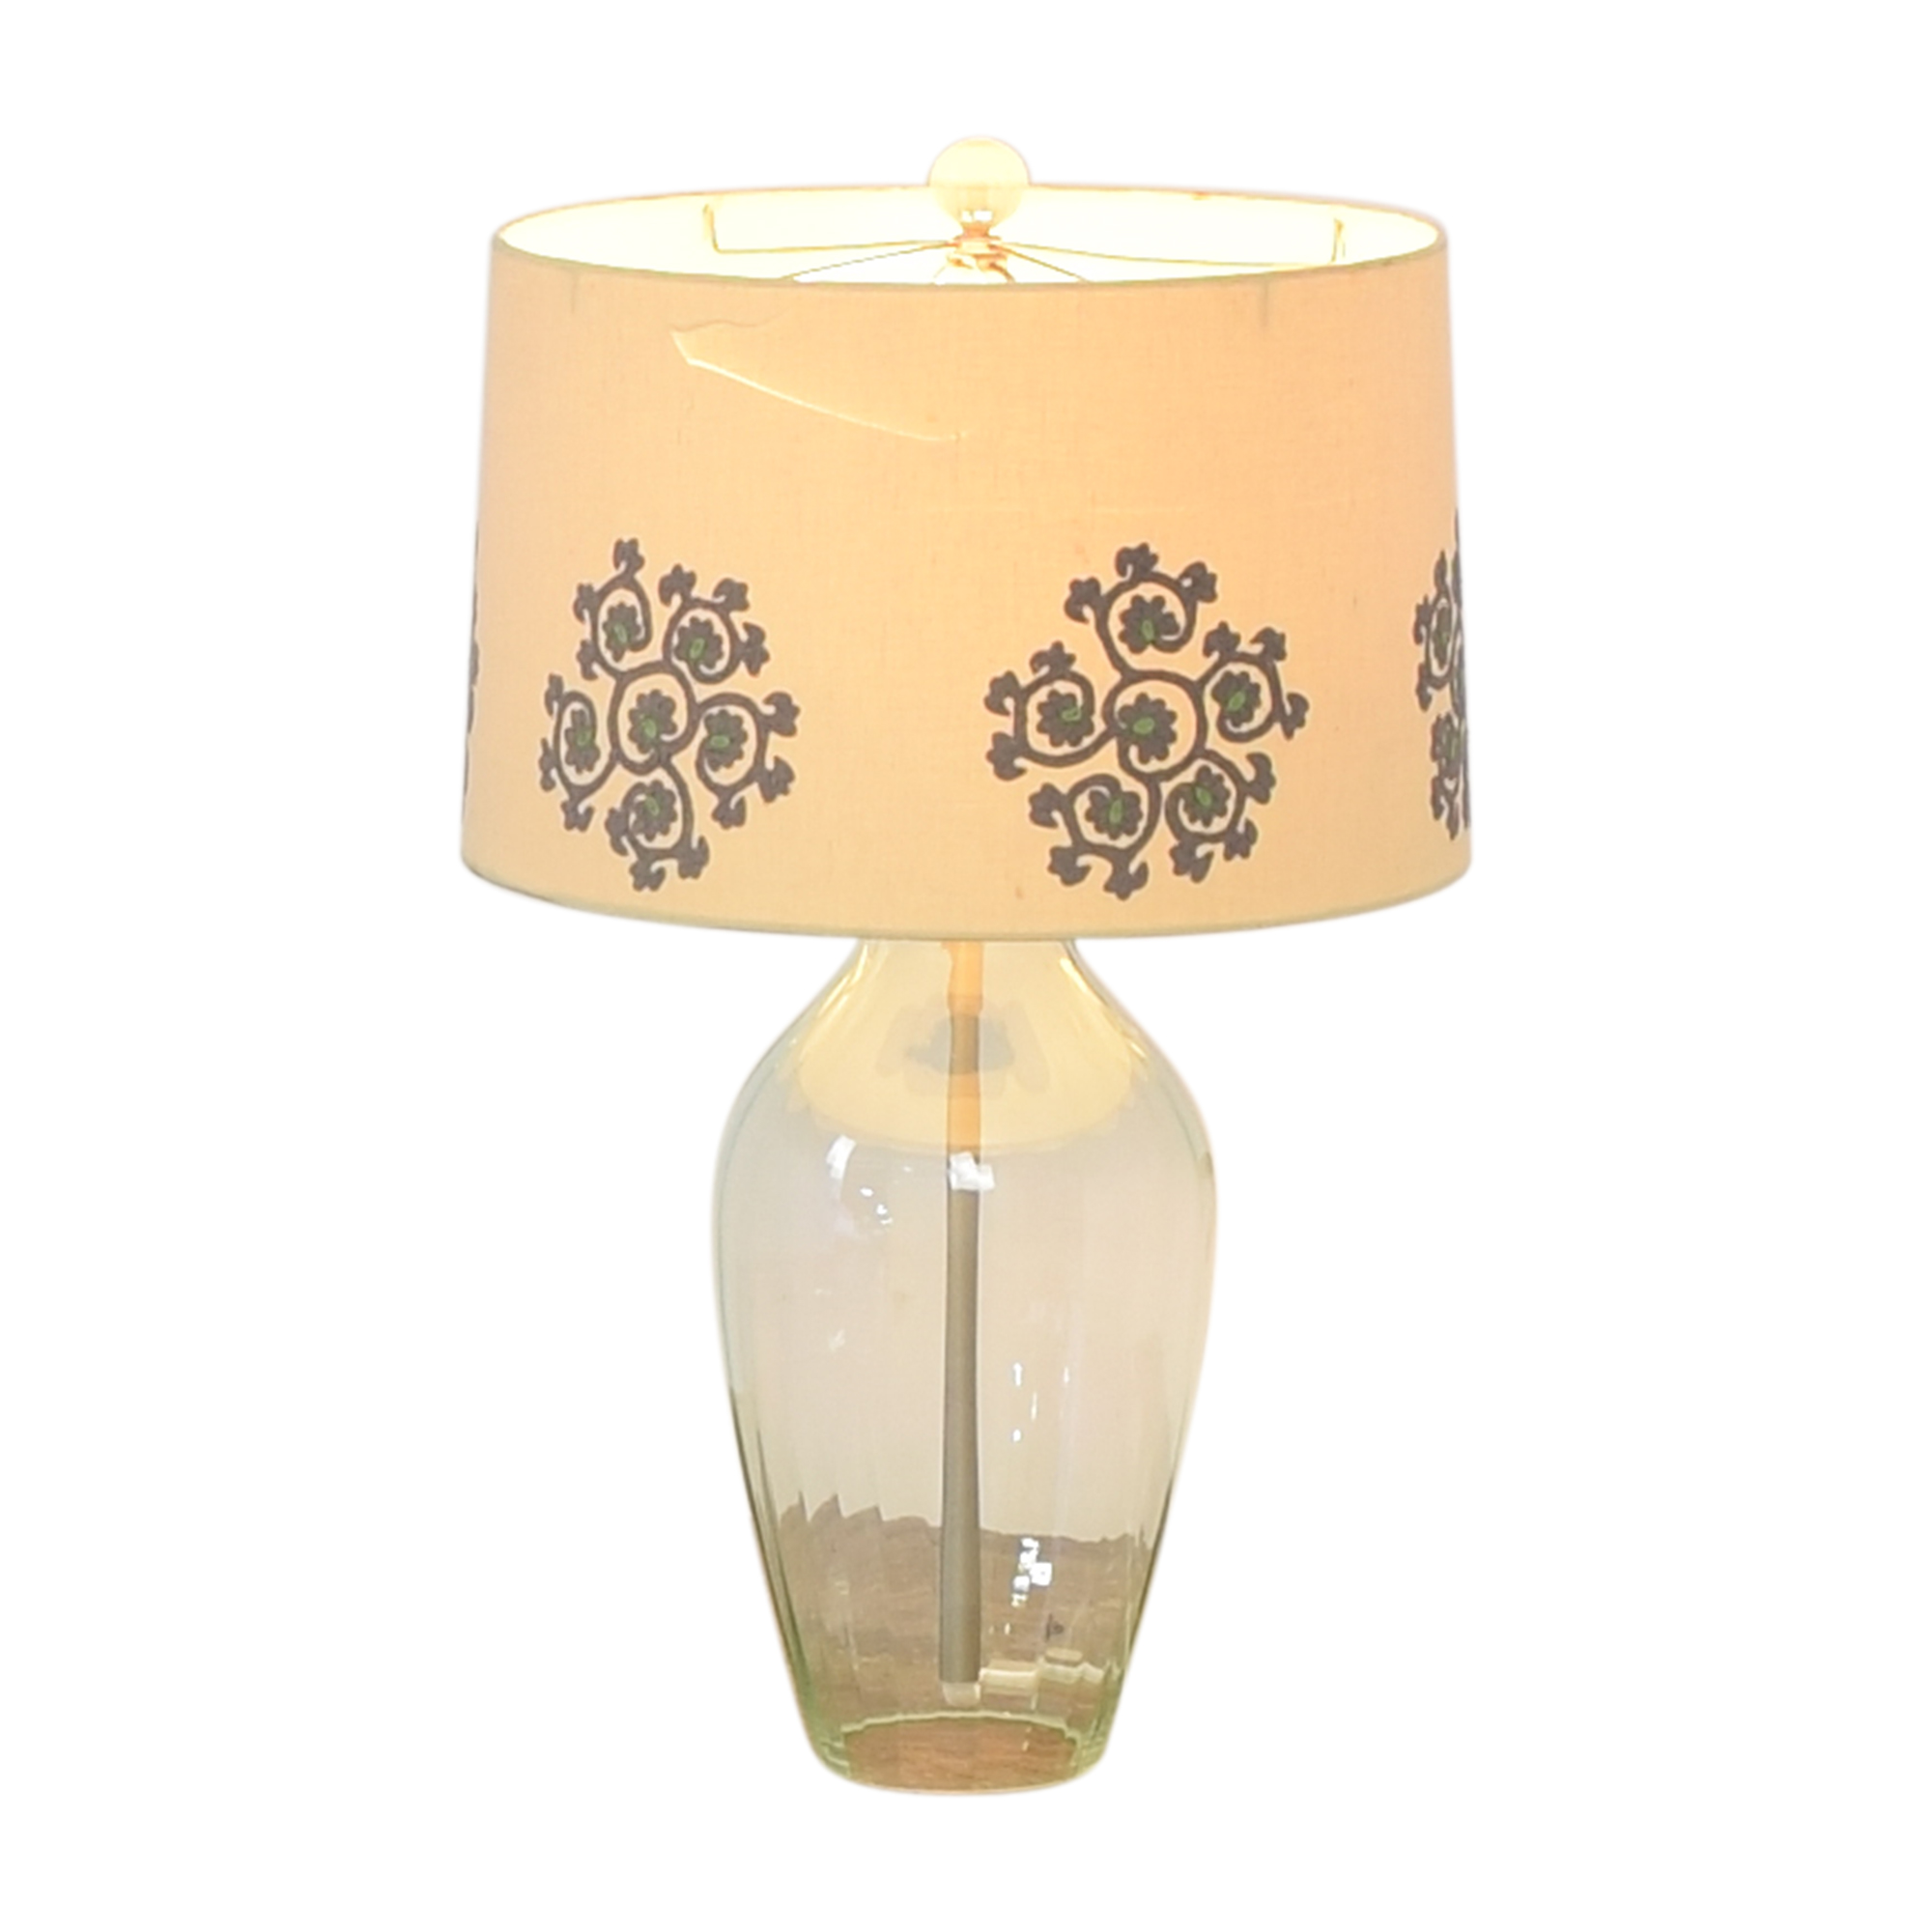 IKEA Table Lamp with Embroidered Shade IKEA